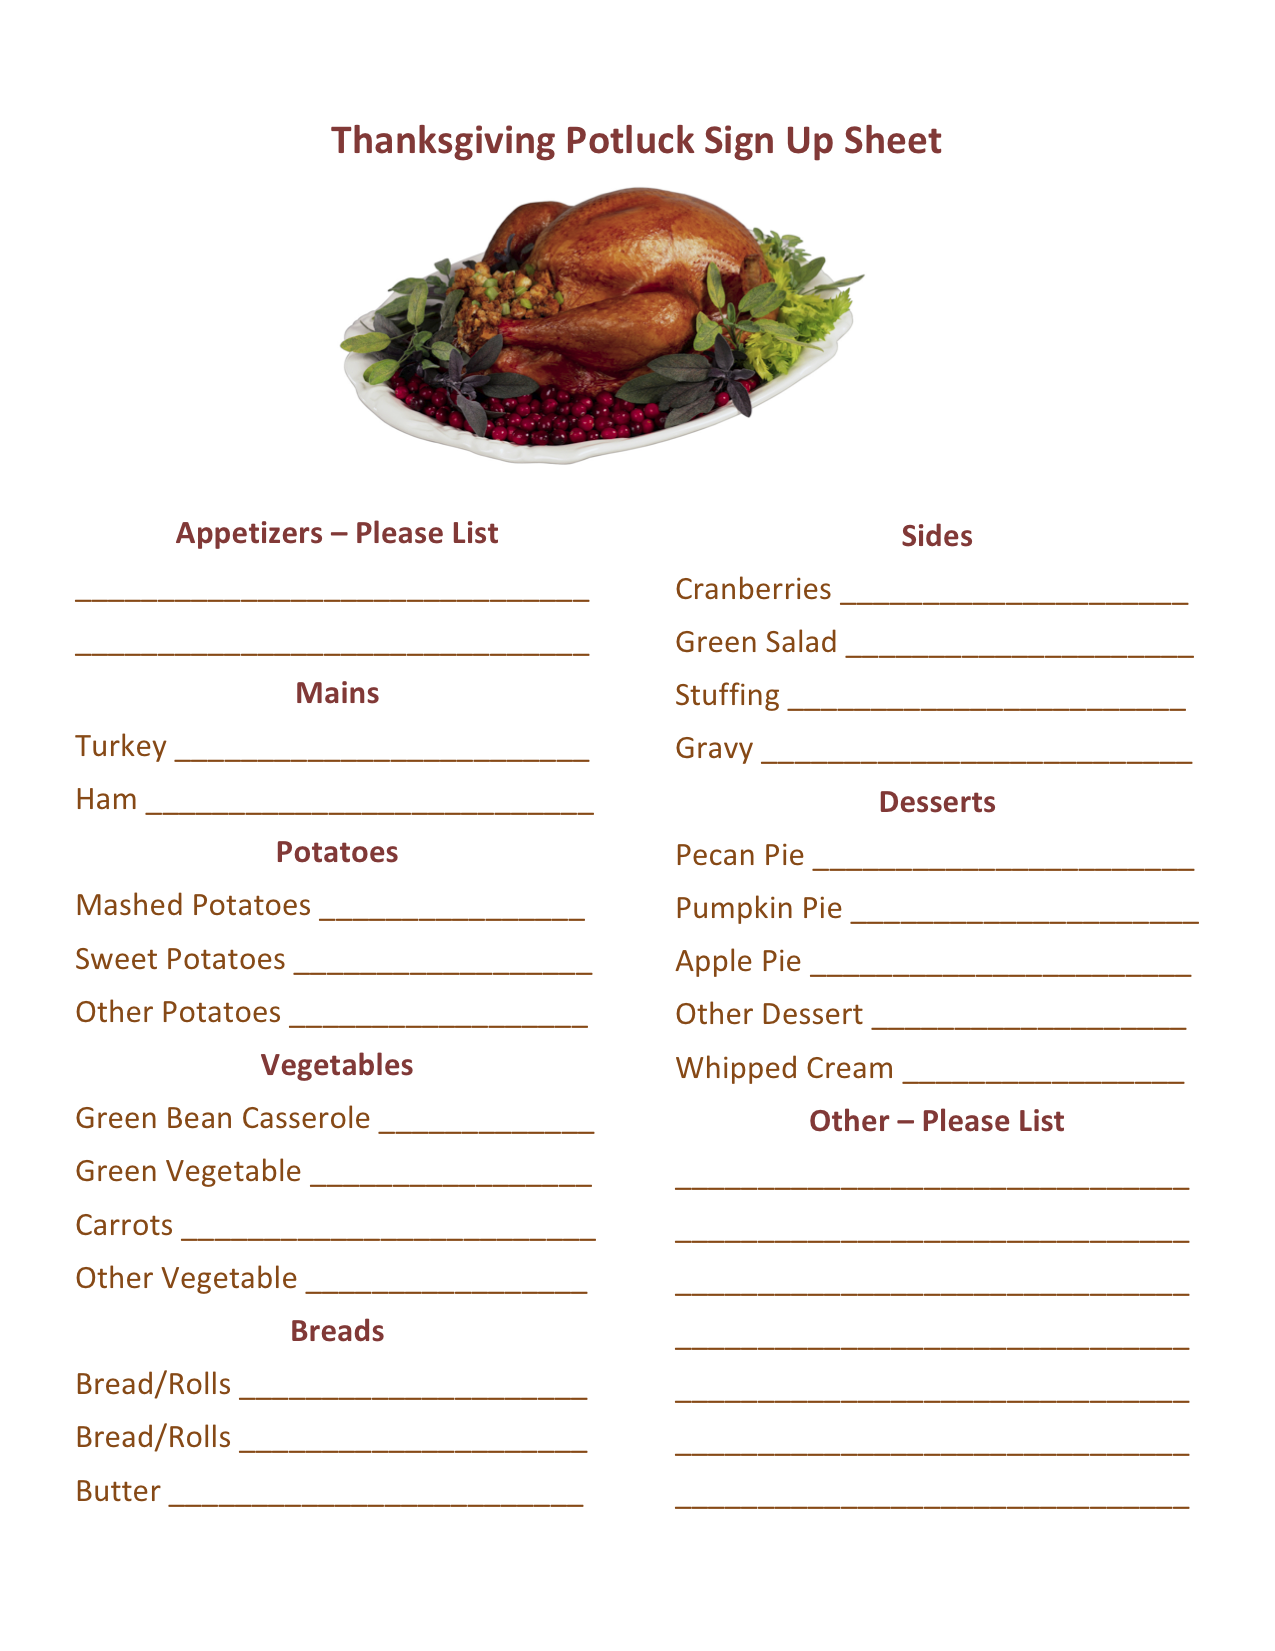 photograph relating to Thanksgiving Potluck Sign Up Sheet Printable referred to as Thanksgiving Potluck Indicator Up Printable Thanksgiving